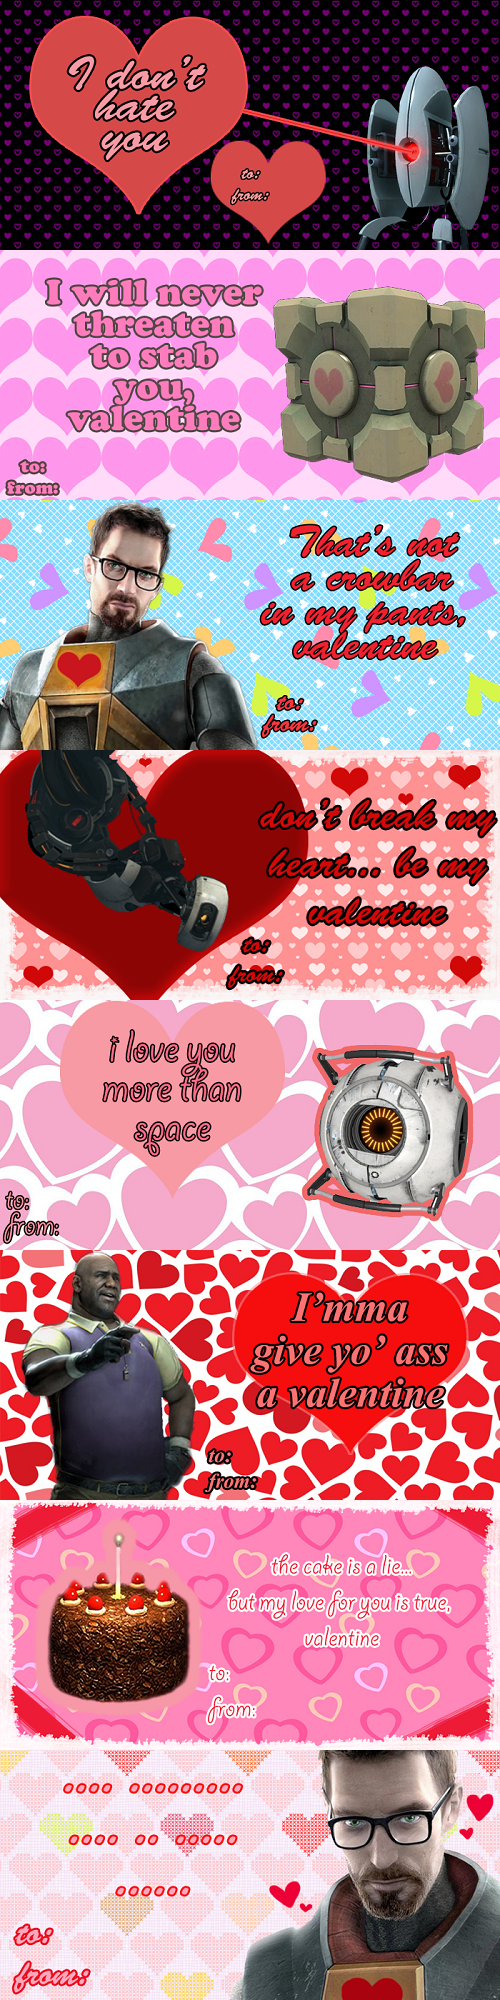 valve valentine's day cards Valentines day